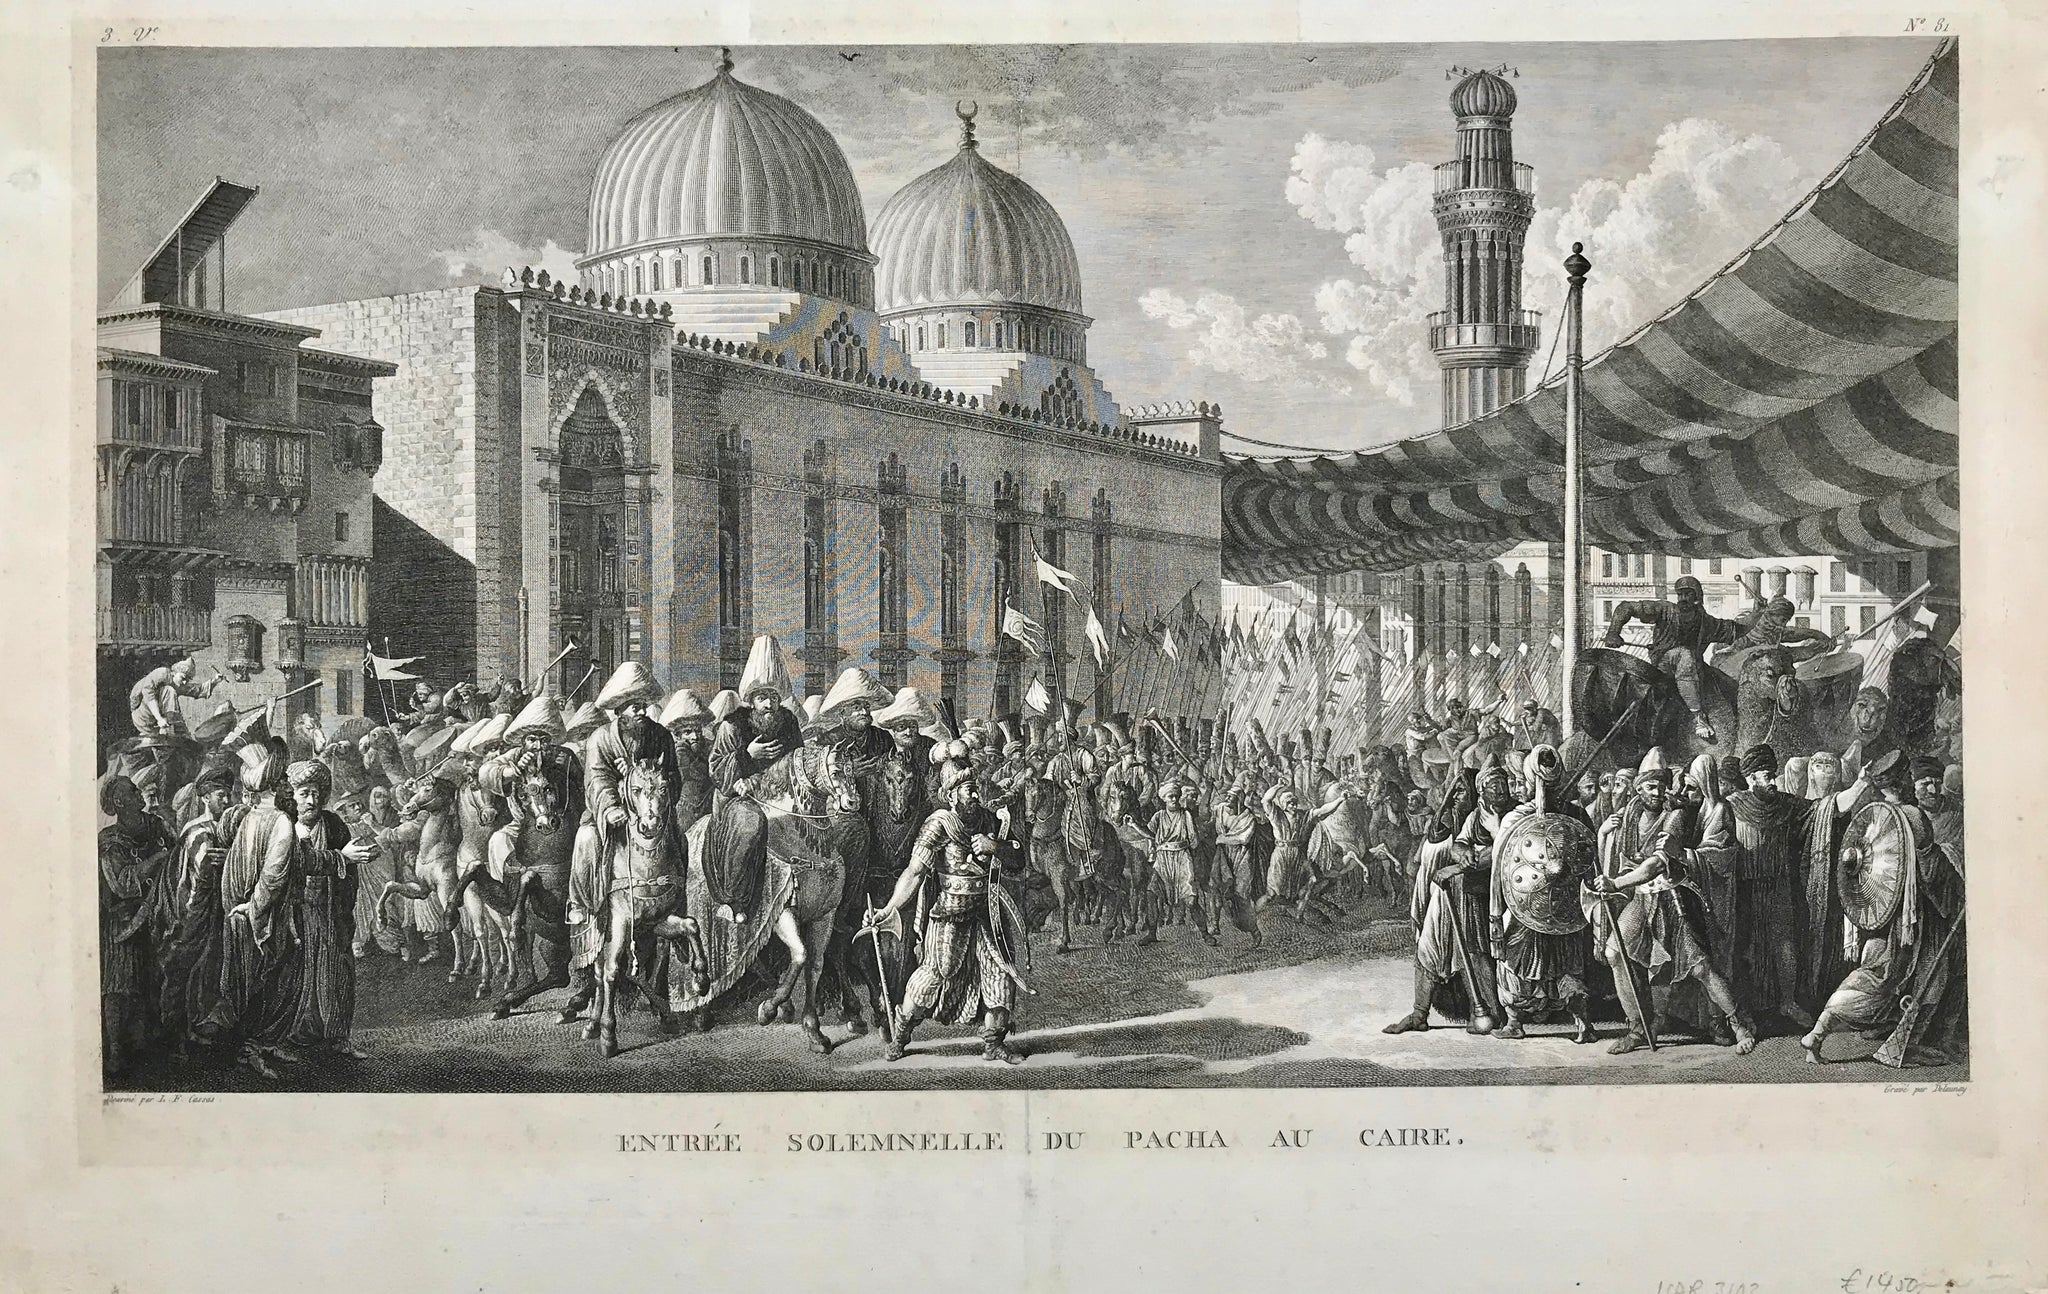 "Antique Print: ""Entrée Solennelle du Pacha au Caire"". Copper etching by Delaunay after Louis François Cassas from ""Voyage pitt. de la Syrie, de la Phénicie etc."" published in 1799. (Cassas had planned a description of the voyage to Syria, Palestine and Eygpt, but it was never finished and only 30 of these were published)"